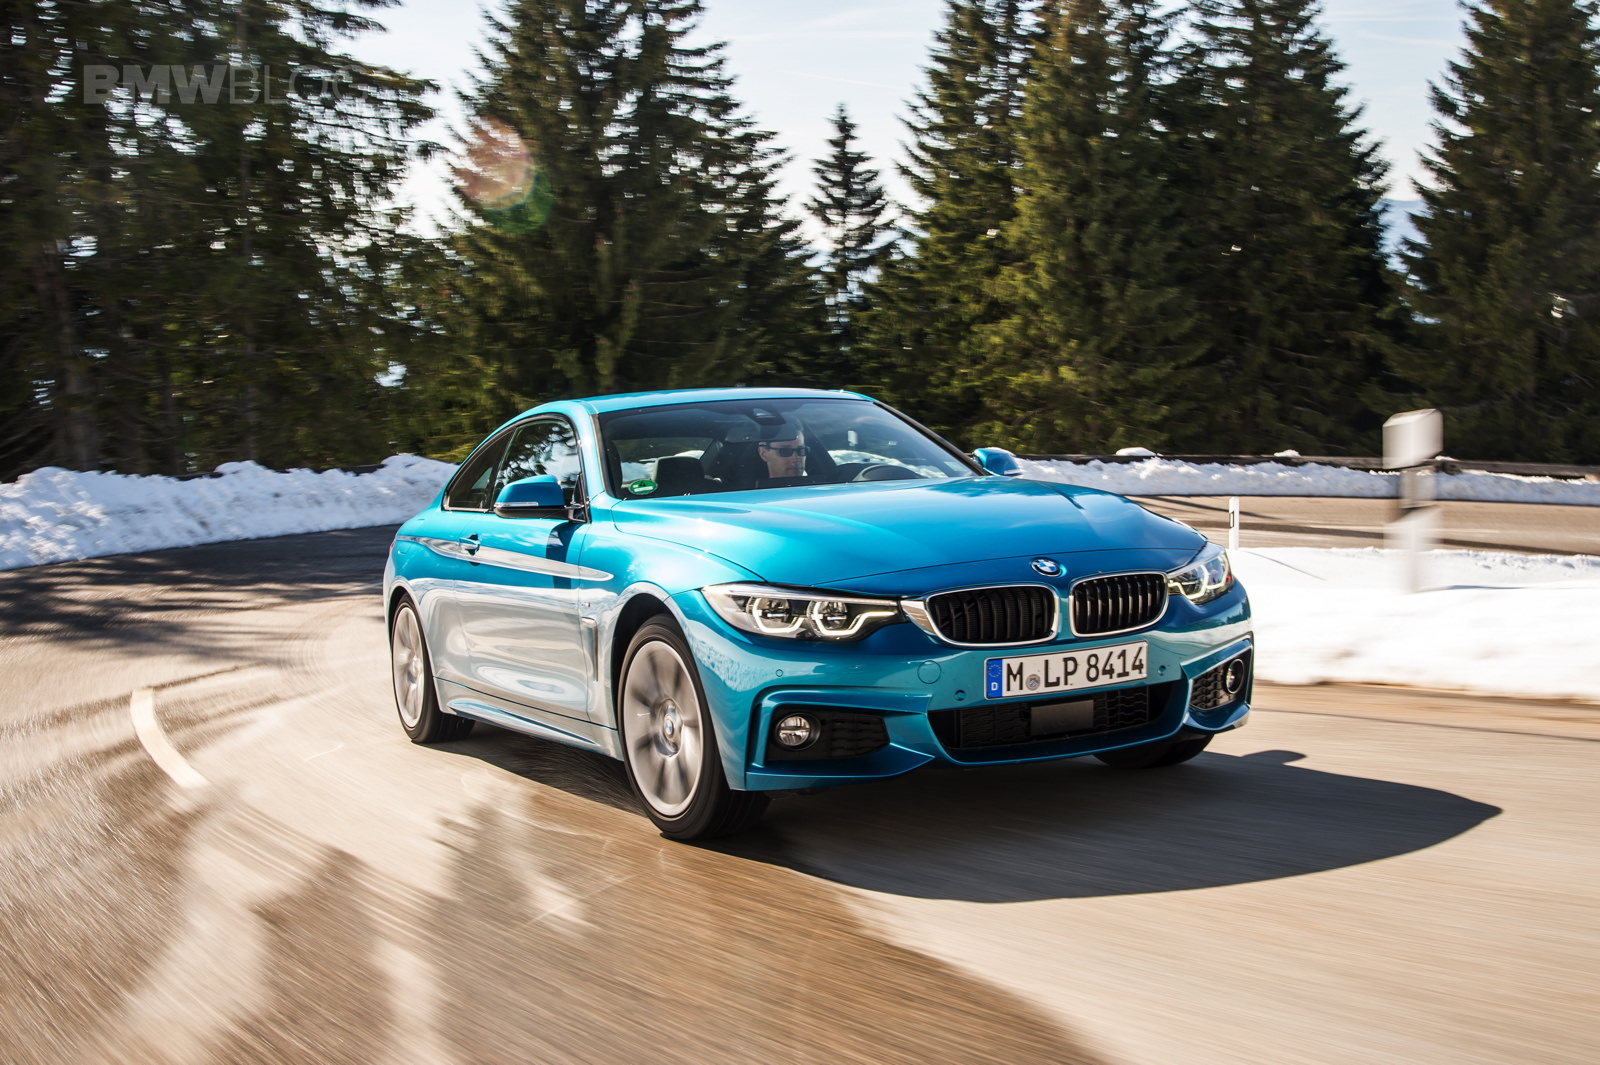 2017 BMW 4 Series Coupe test drive 10